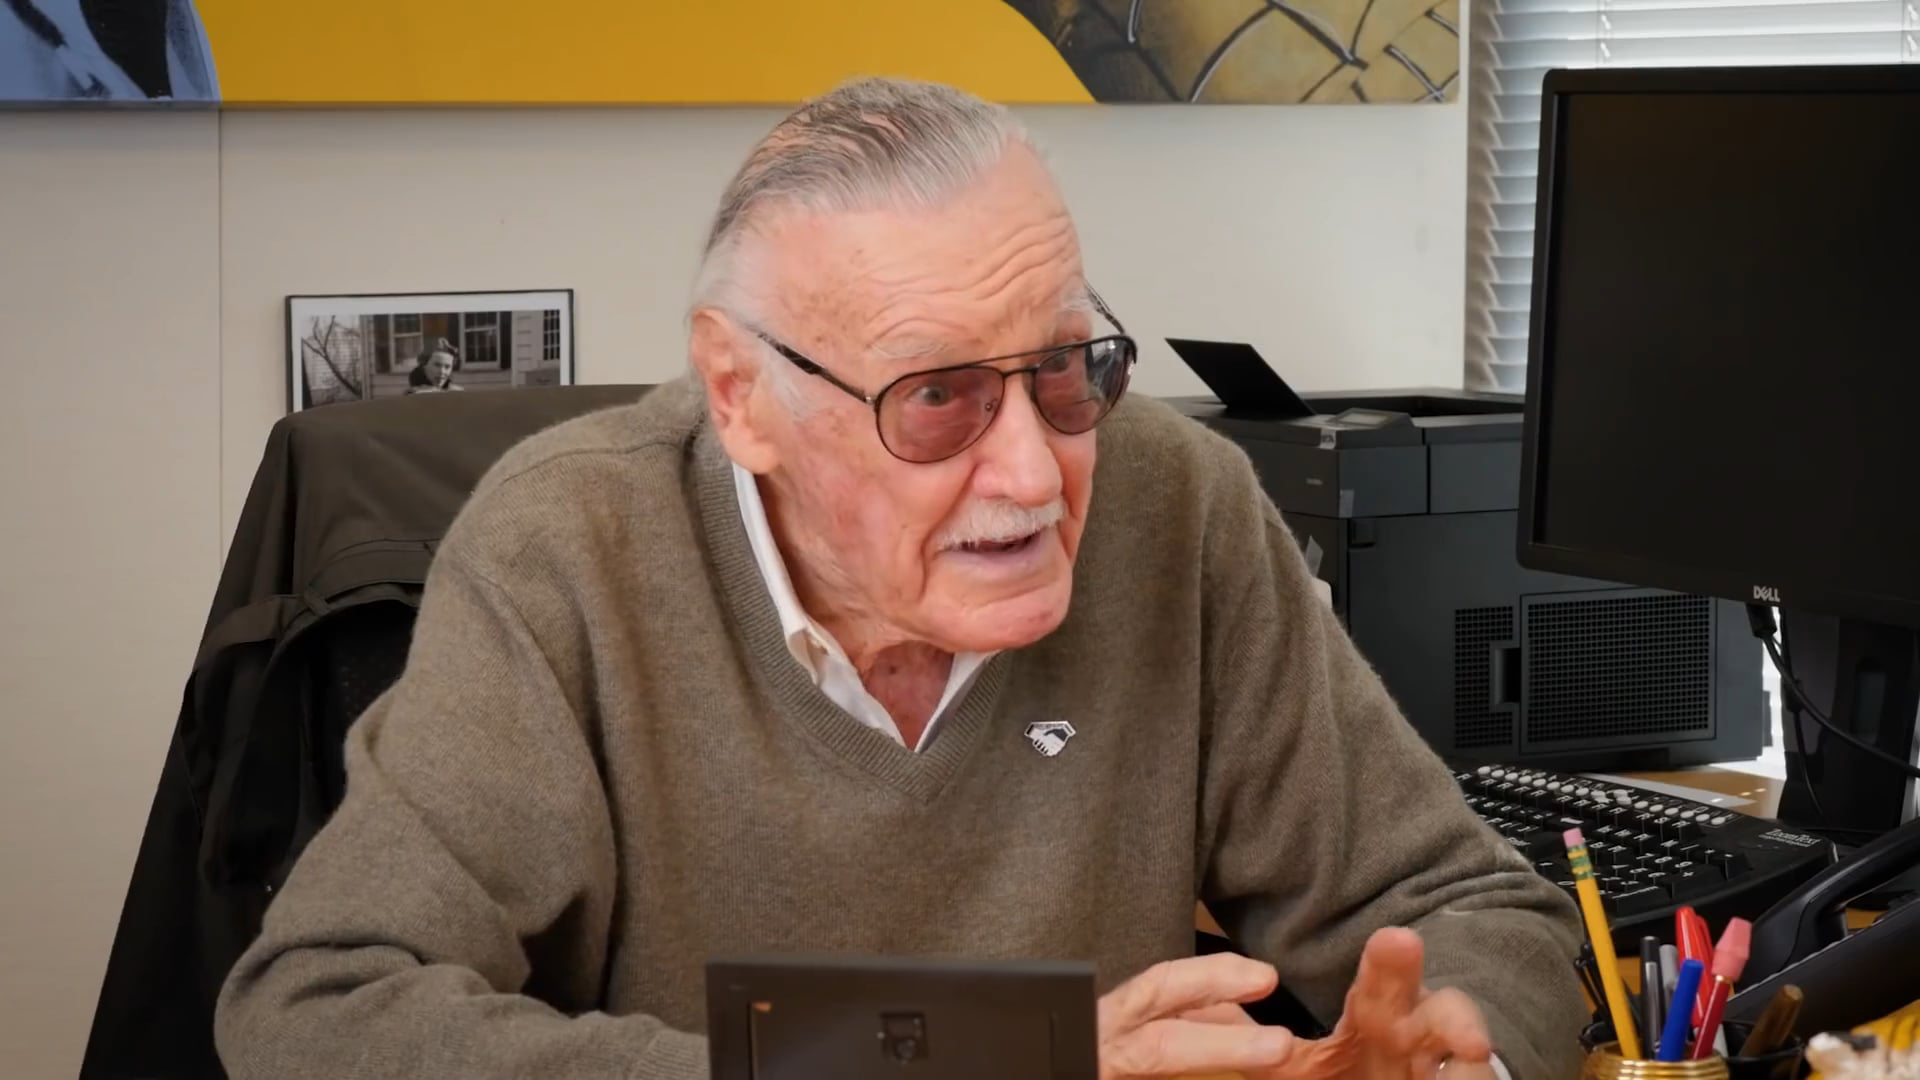 The Oh My Disney Show - Marvel's Stan Lee